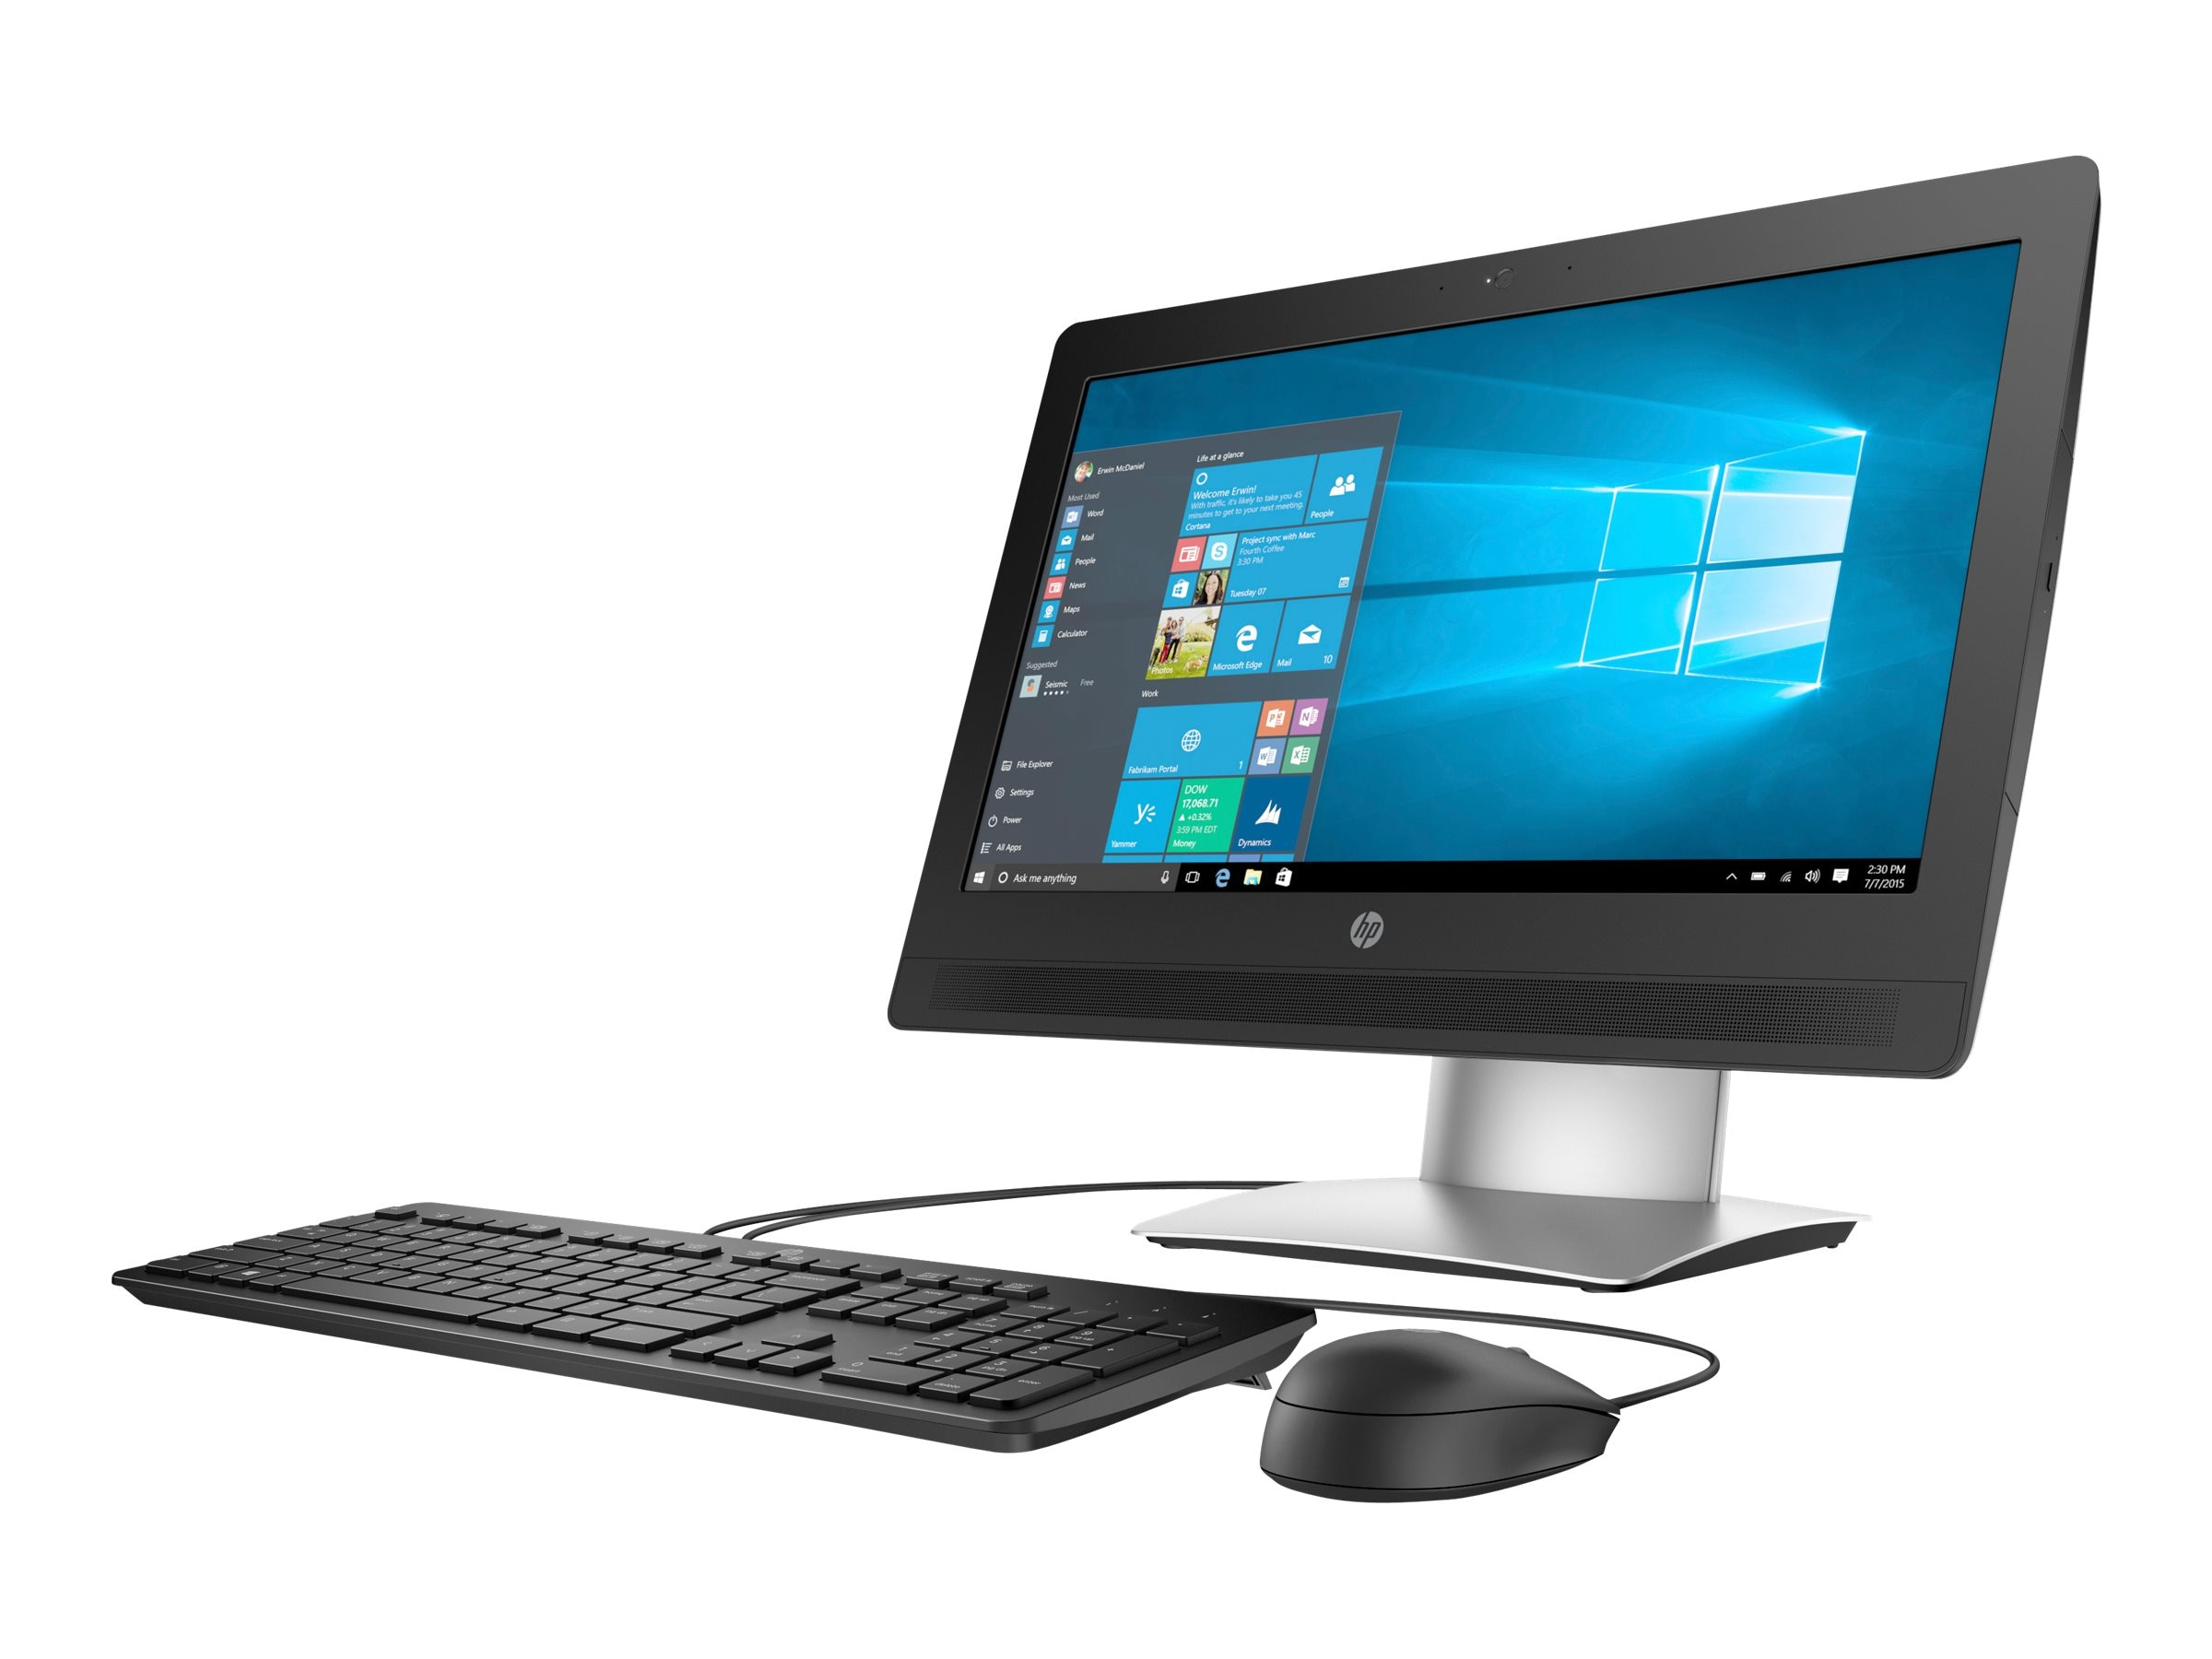 HP ProOne 400 G2 AIO Core i3-6100 3.7GHz 4GB 500GB DVD-RW GbE n BT WC 20 HD Touch W7P64-W10P, P5U58UT#ABA, 30917258, Desktops - All-in-One